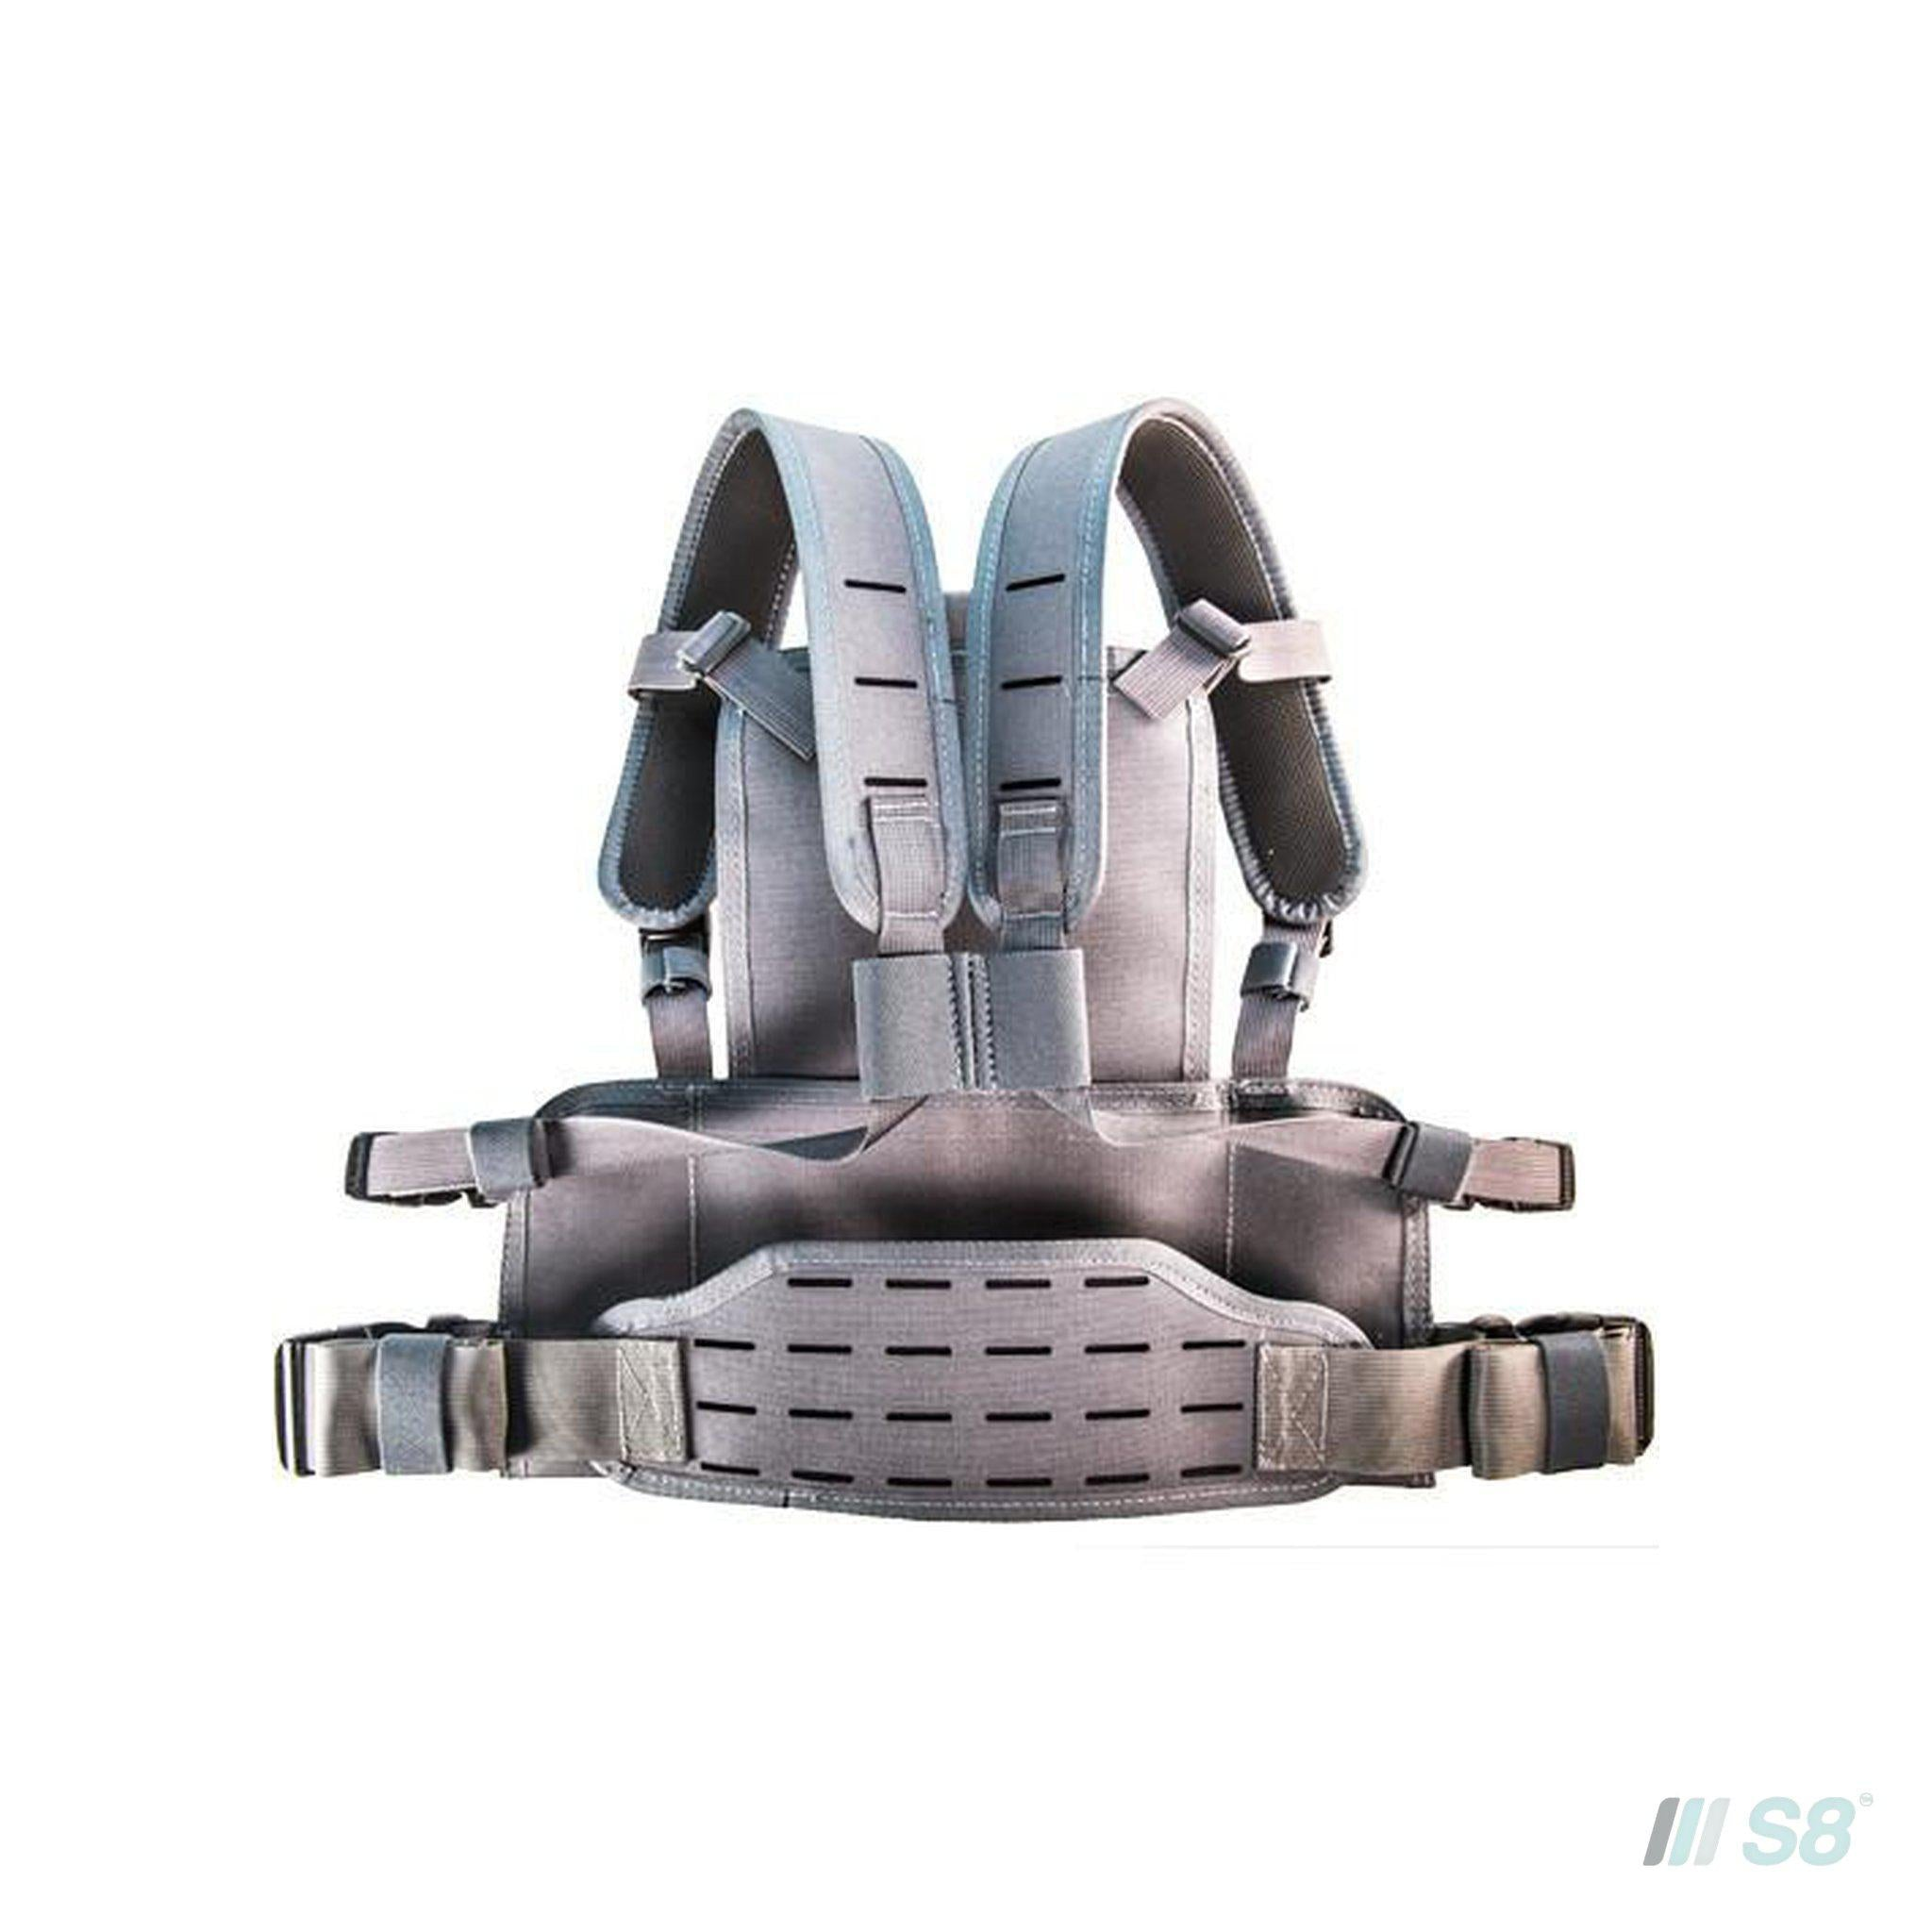 HSGI - Neo Chest Rig-HSGI-S8 Products Group